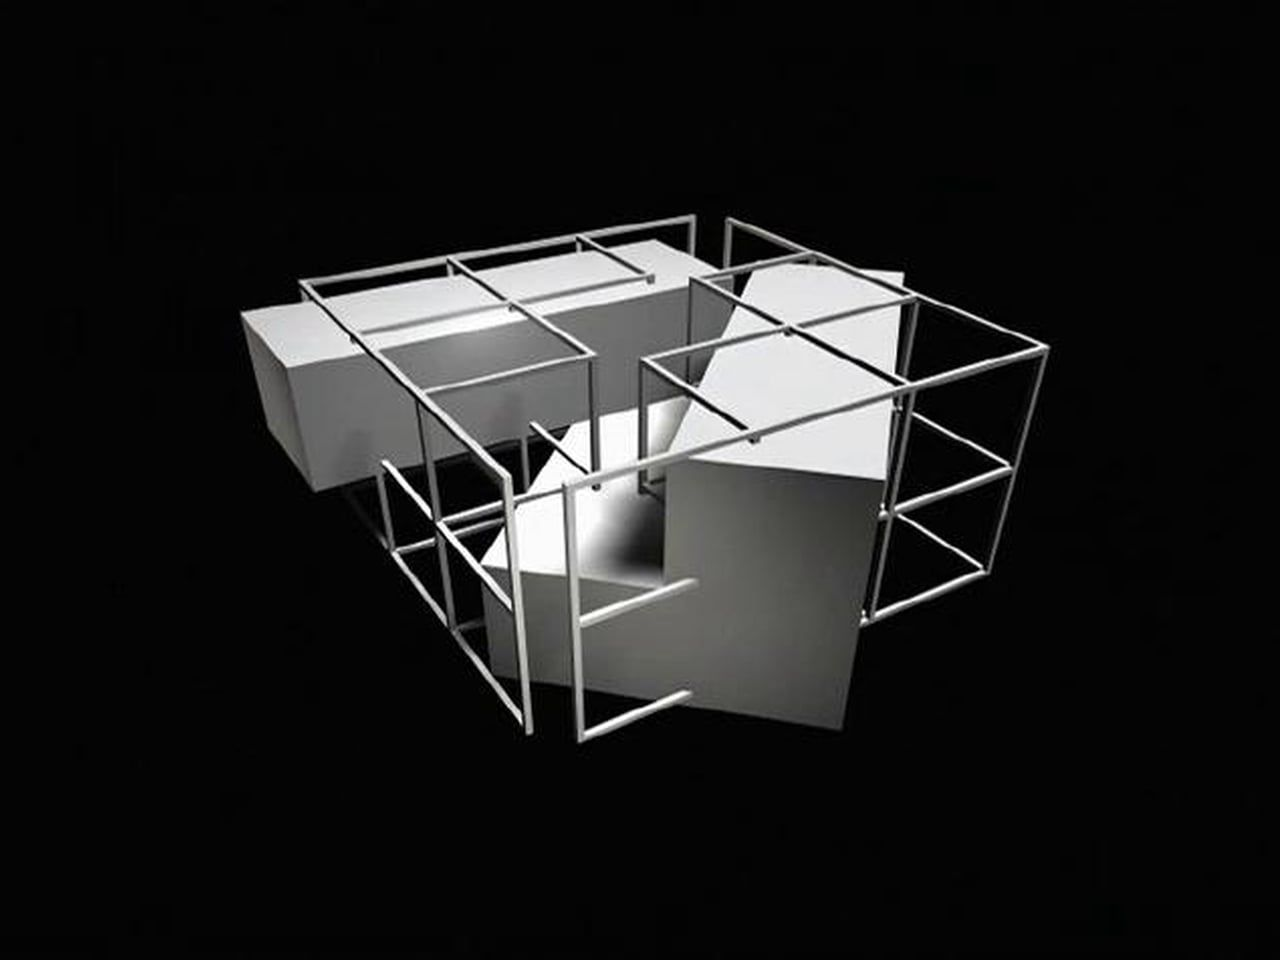 Peter eisenman house ii google search concept models for Architectural concept models